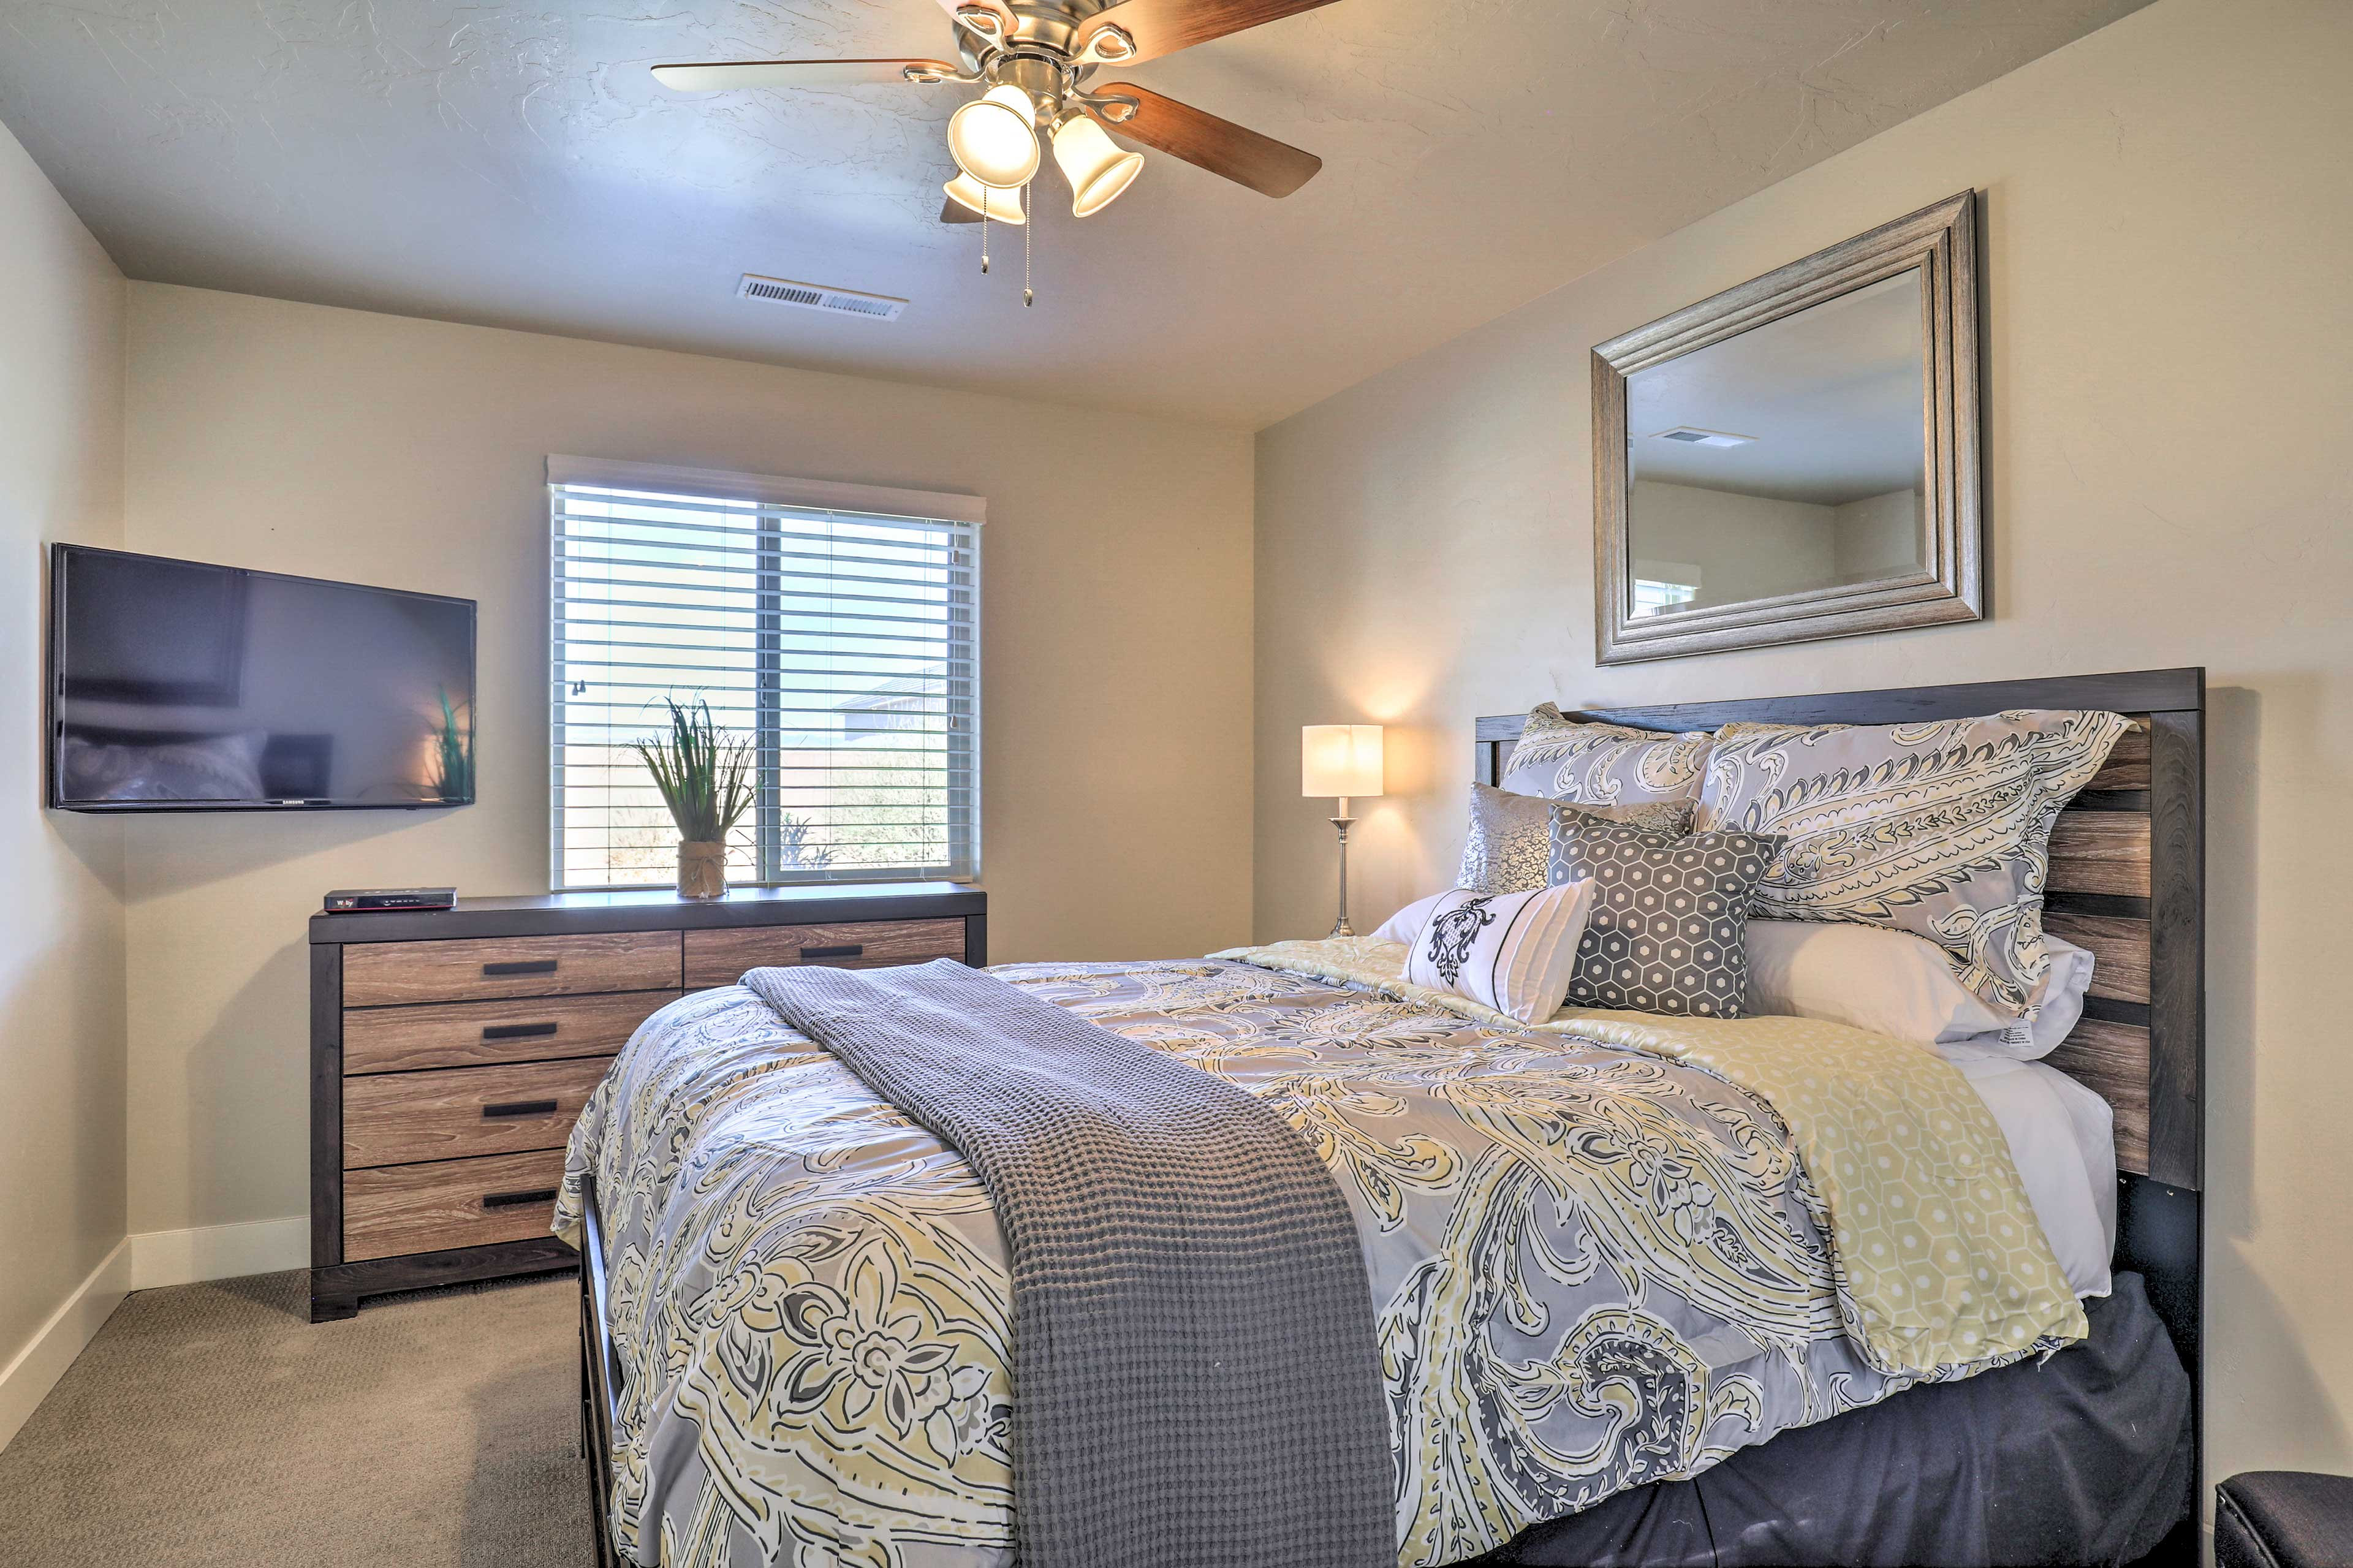 The second bedroom also features a flat-screen TV.